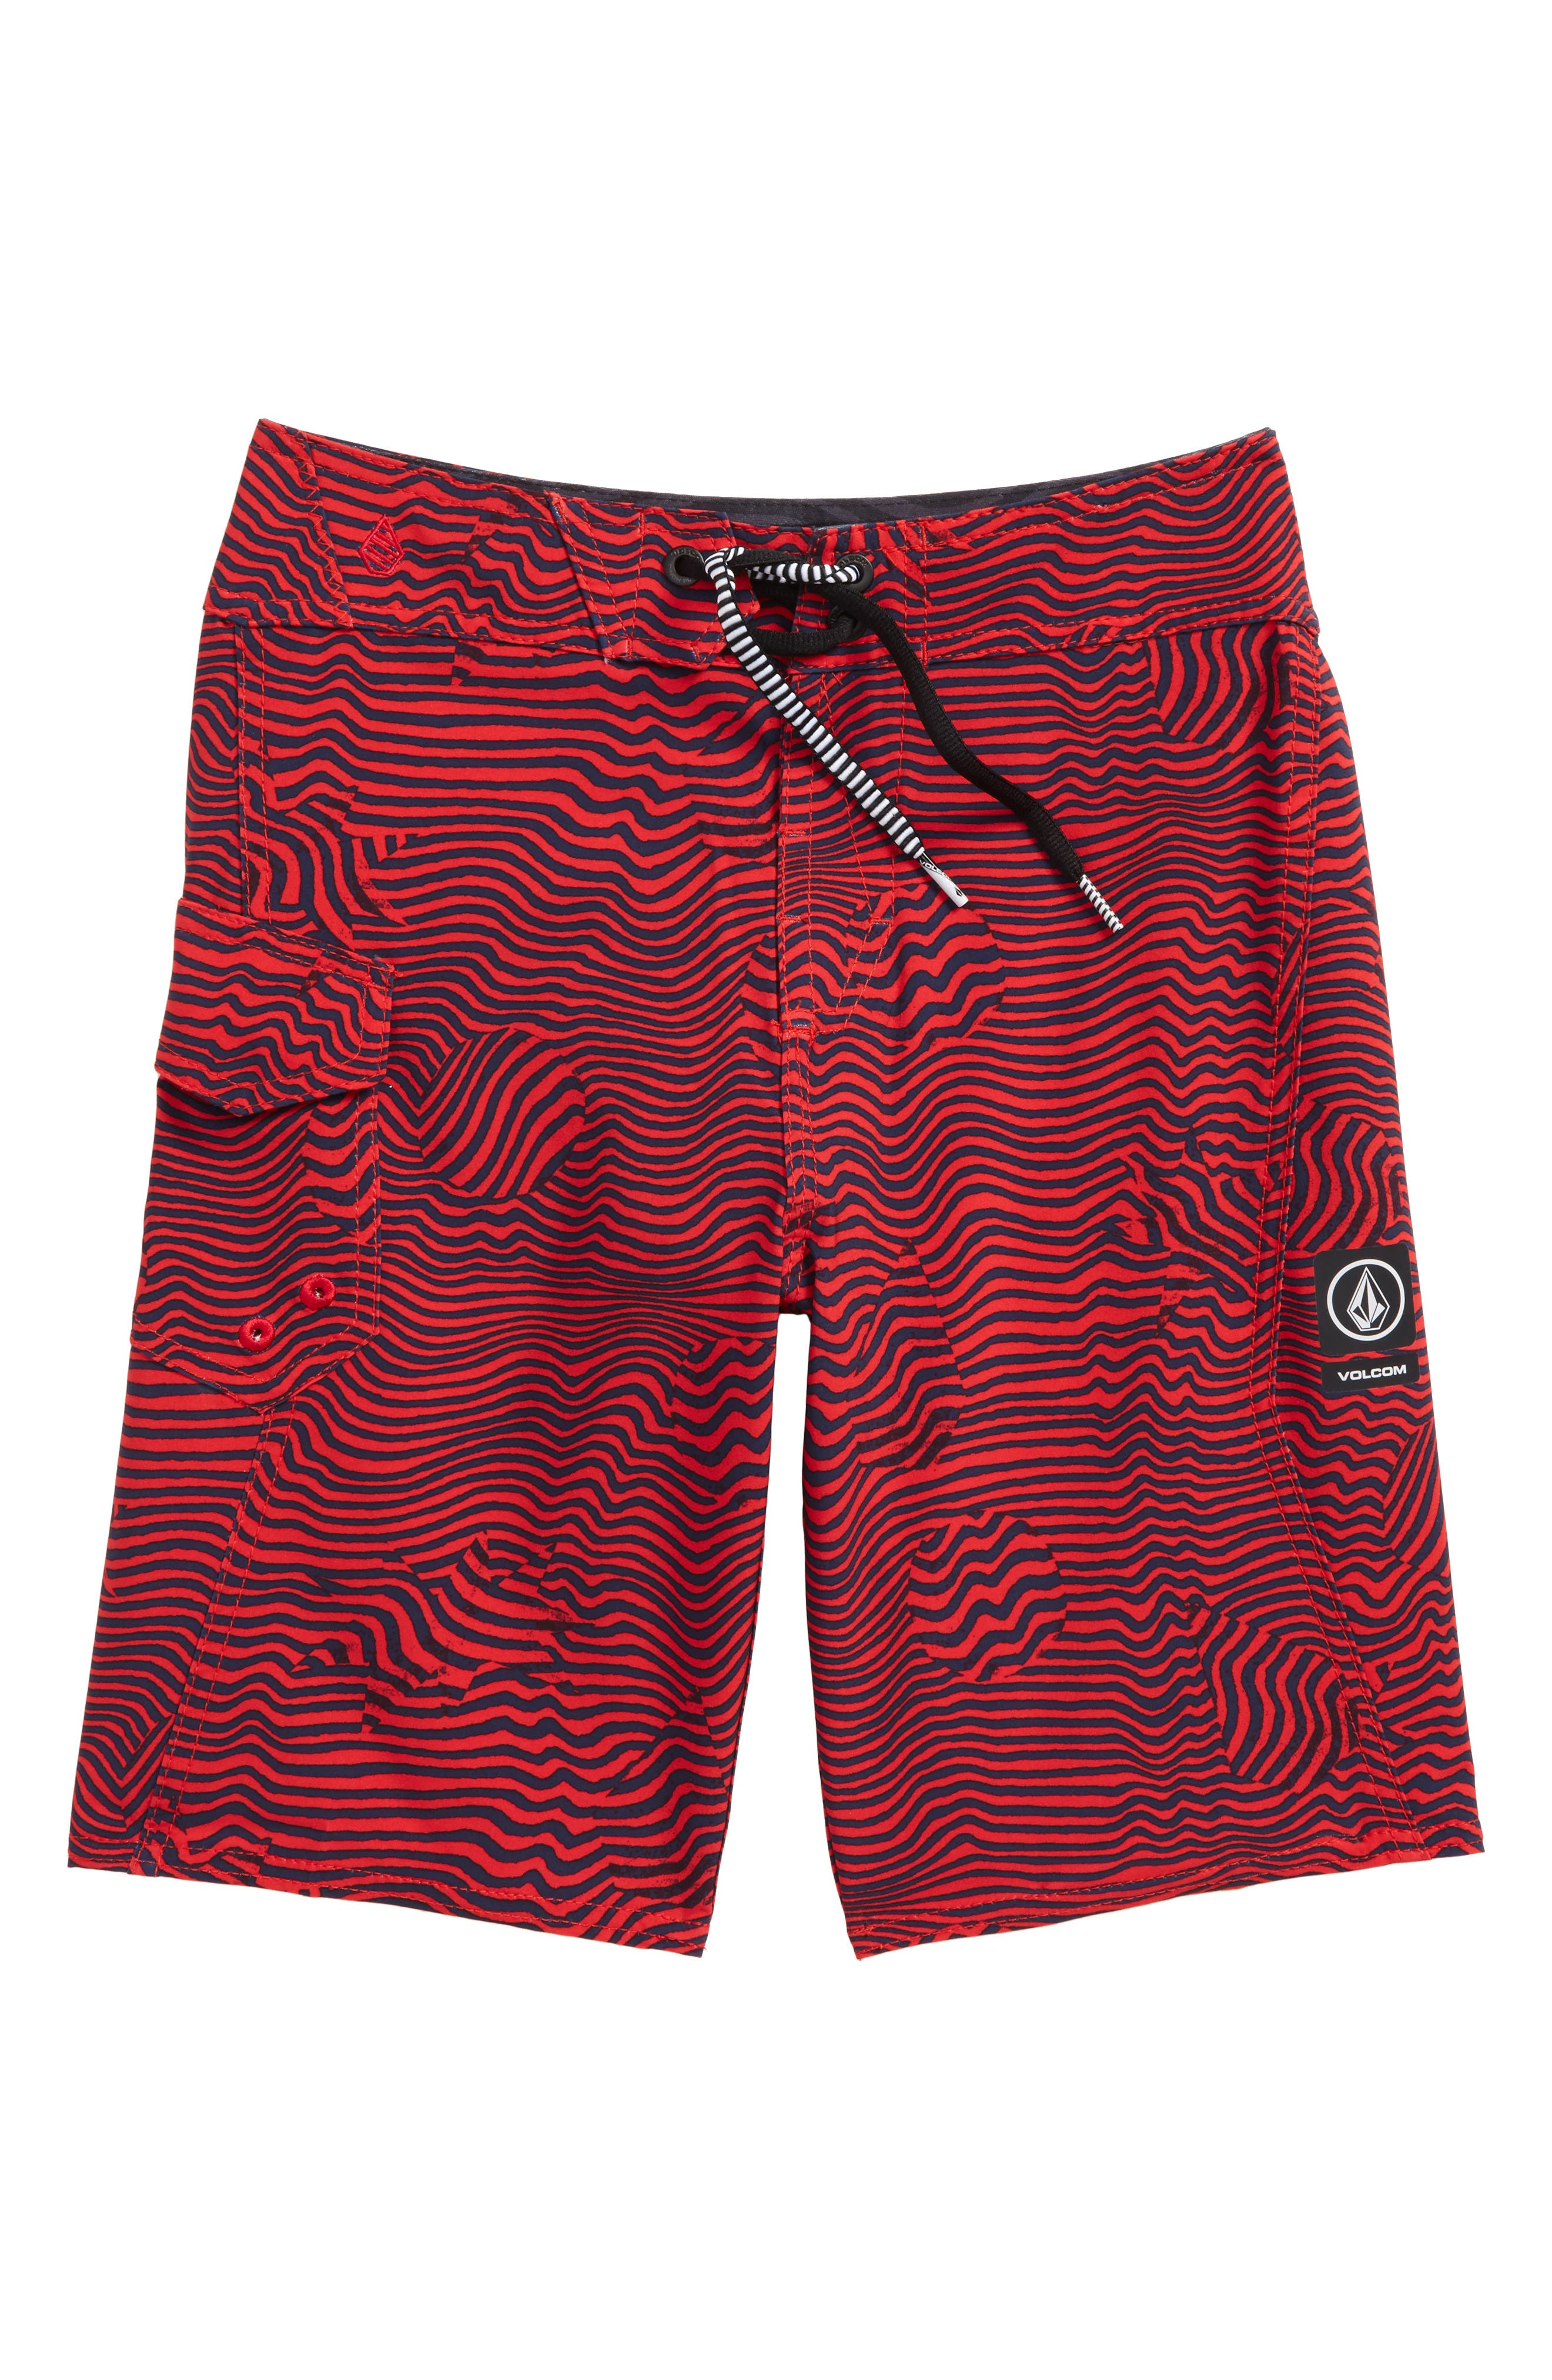 Magnetic Stone Board Shorts,                             Main thumbnail 1, color,                             True Red